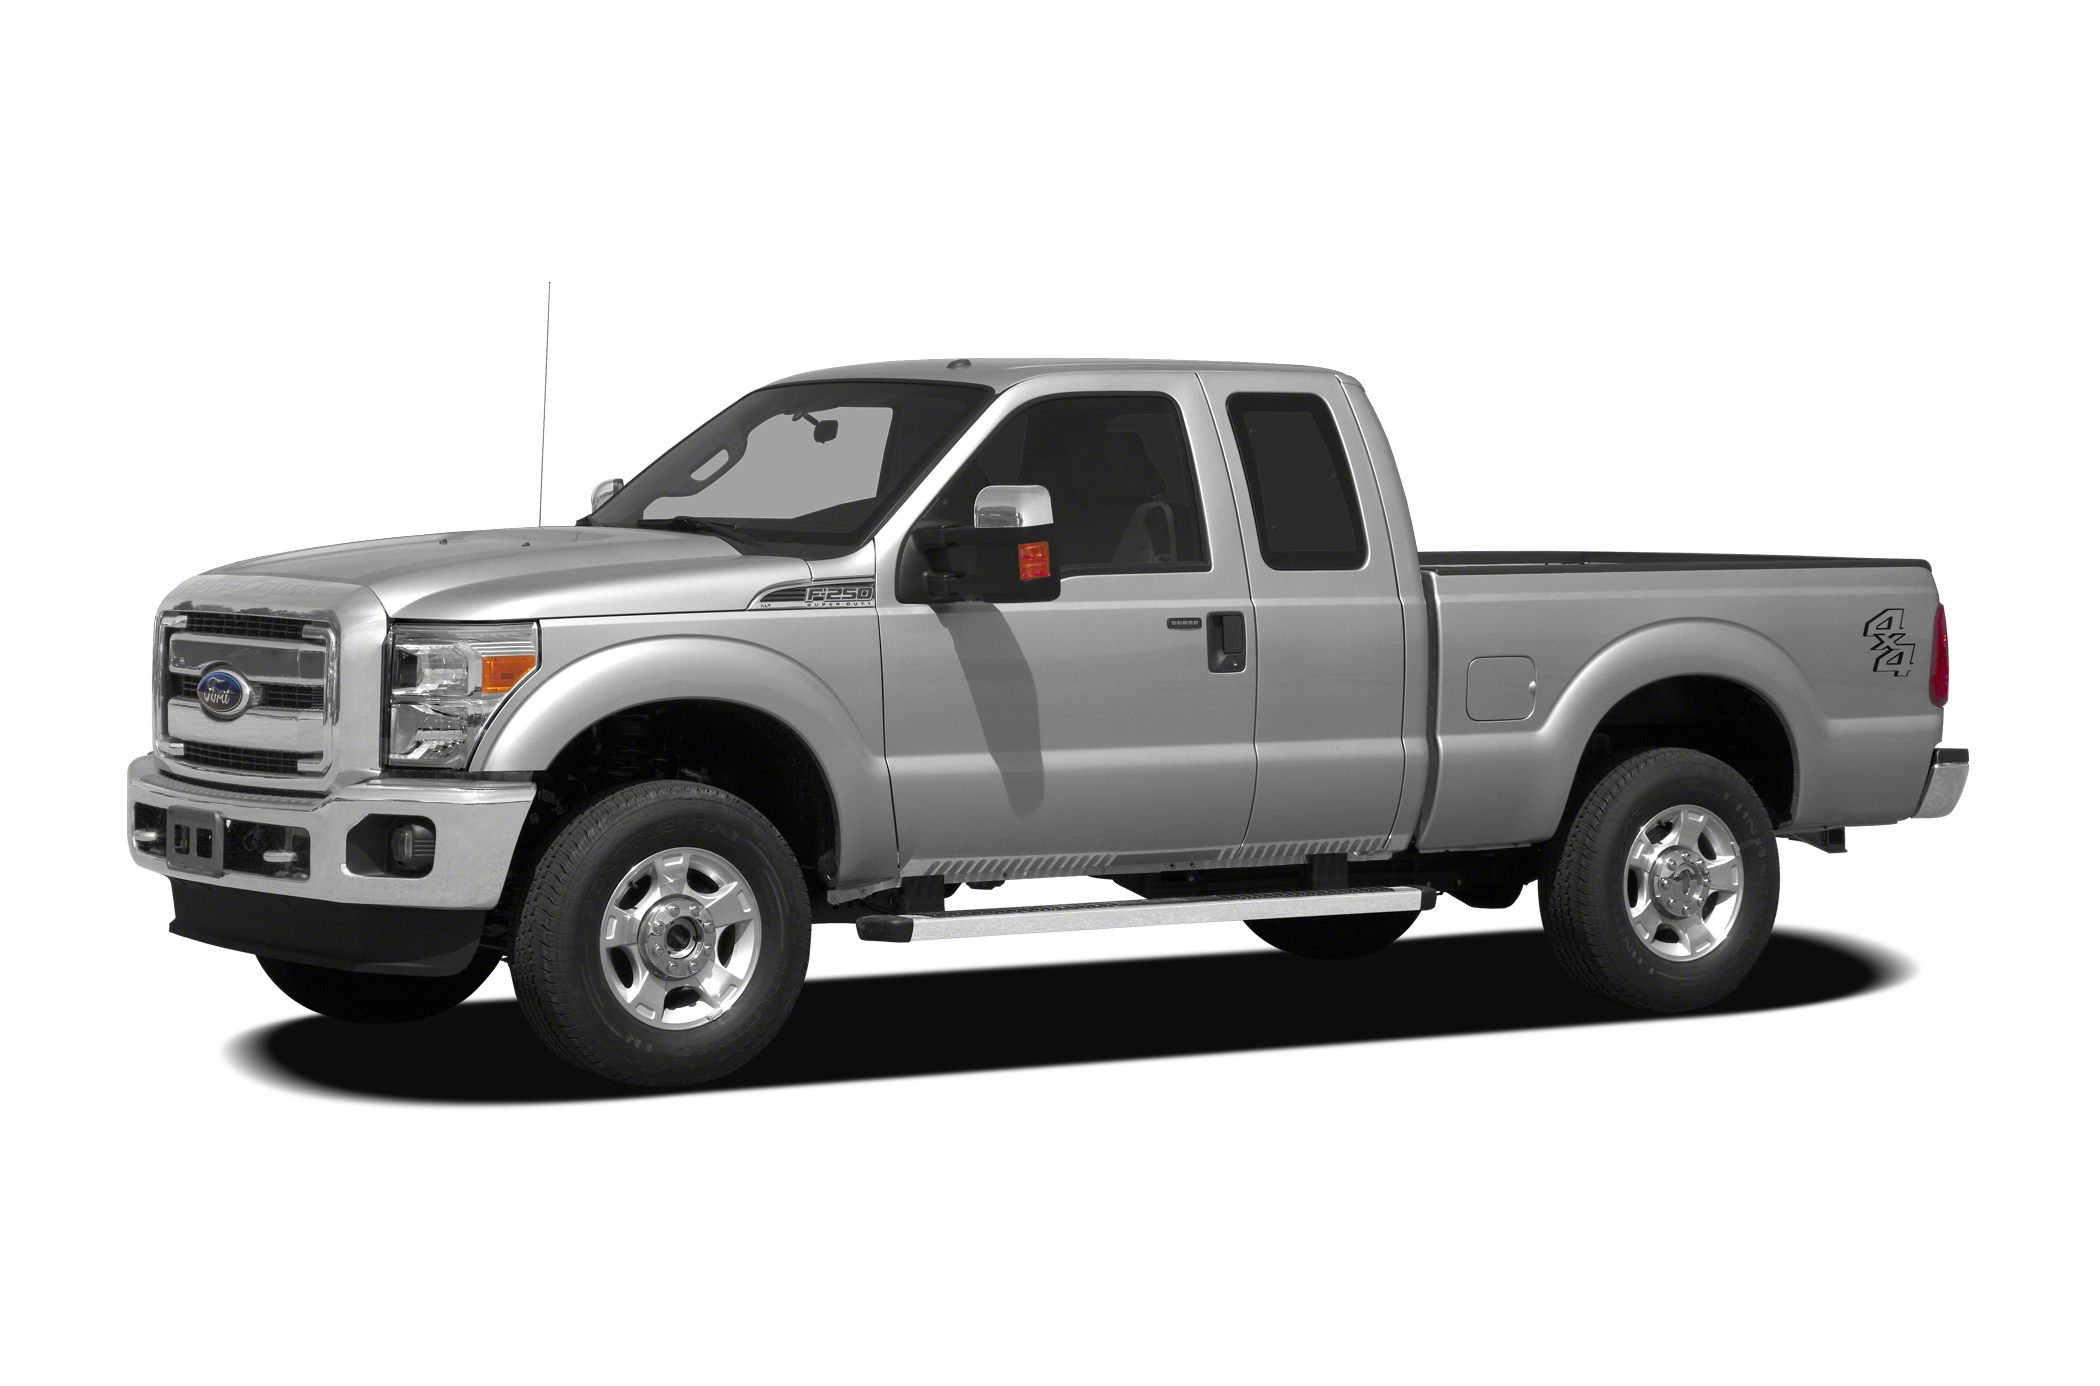 2011 Ford F250 Lariat Extended Cab Pickup for sale in Ronan for $25,000 with 194,604 miles